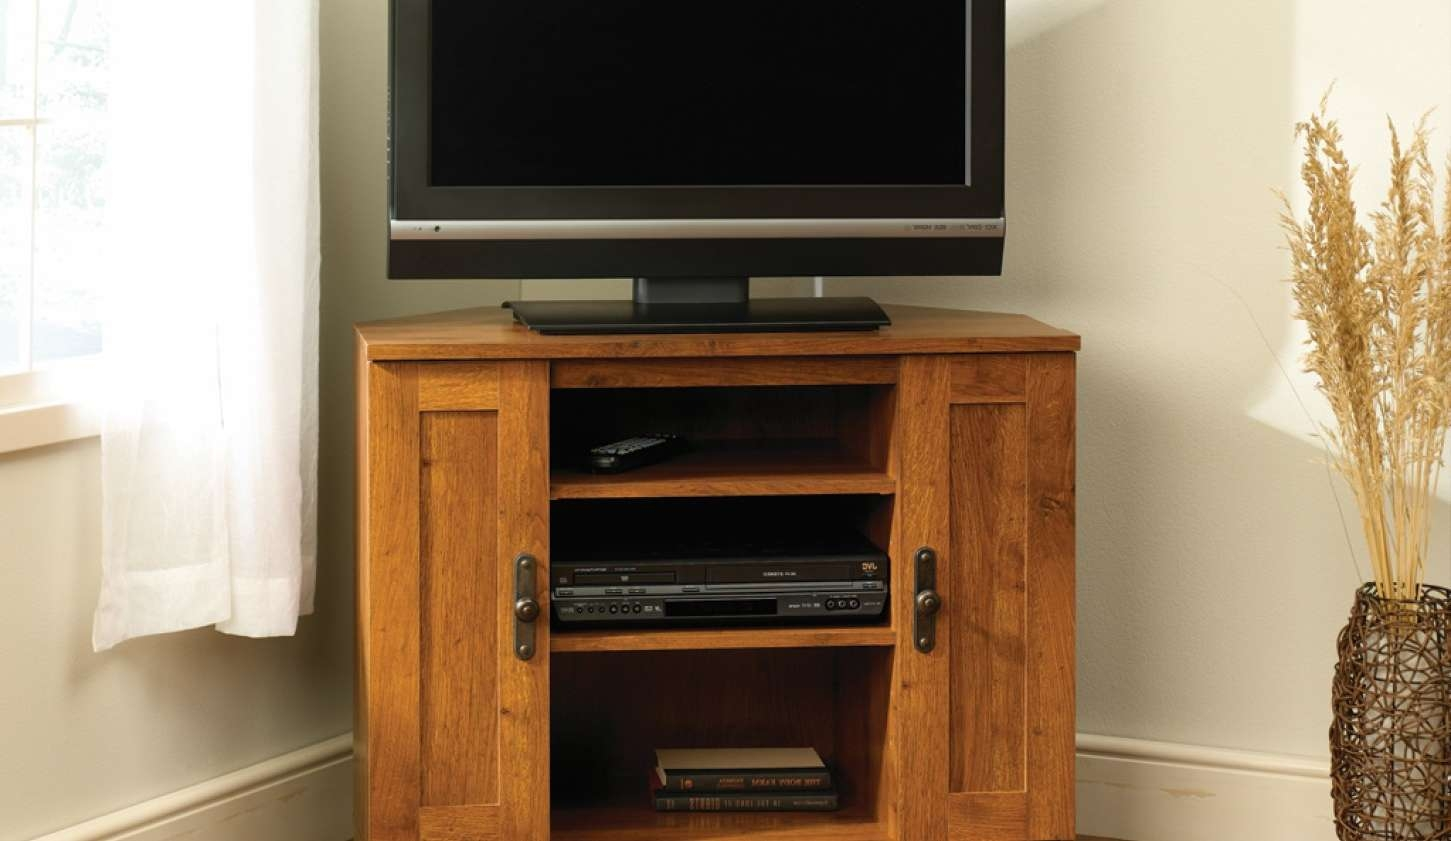 Tv : Breathtaking Corner Oak Tv Cabinets For Flat Screens With Throughout Oak Tv Cabinets For Flat Screens With Doors (View 11 of 20)